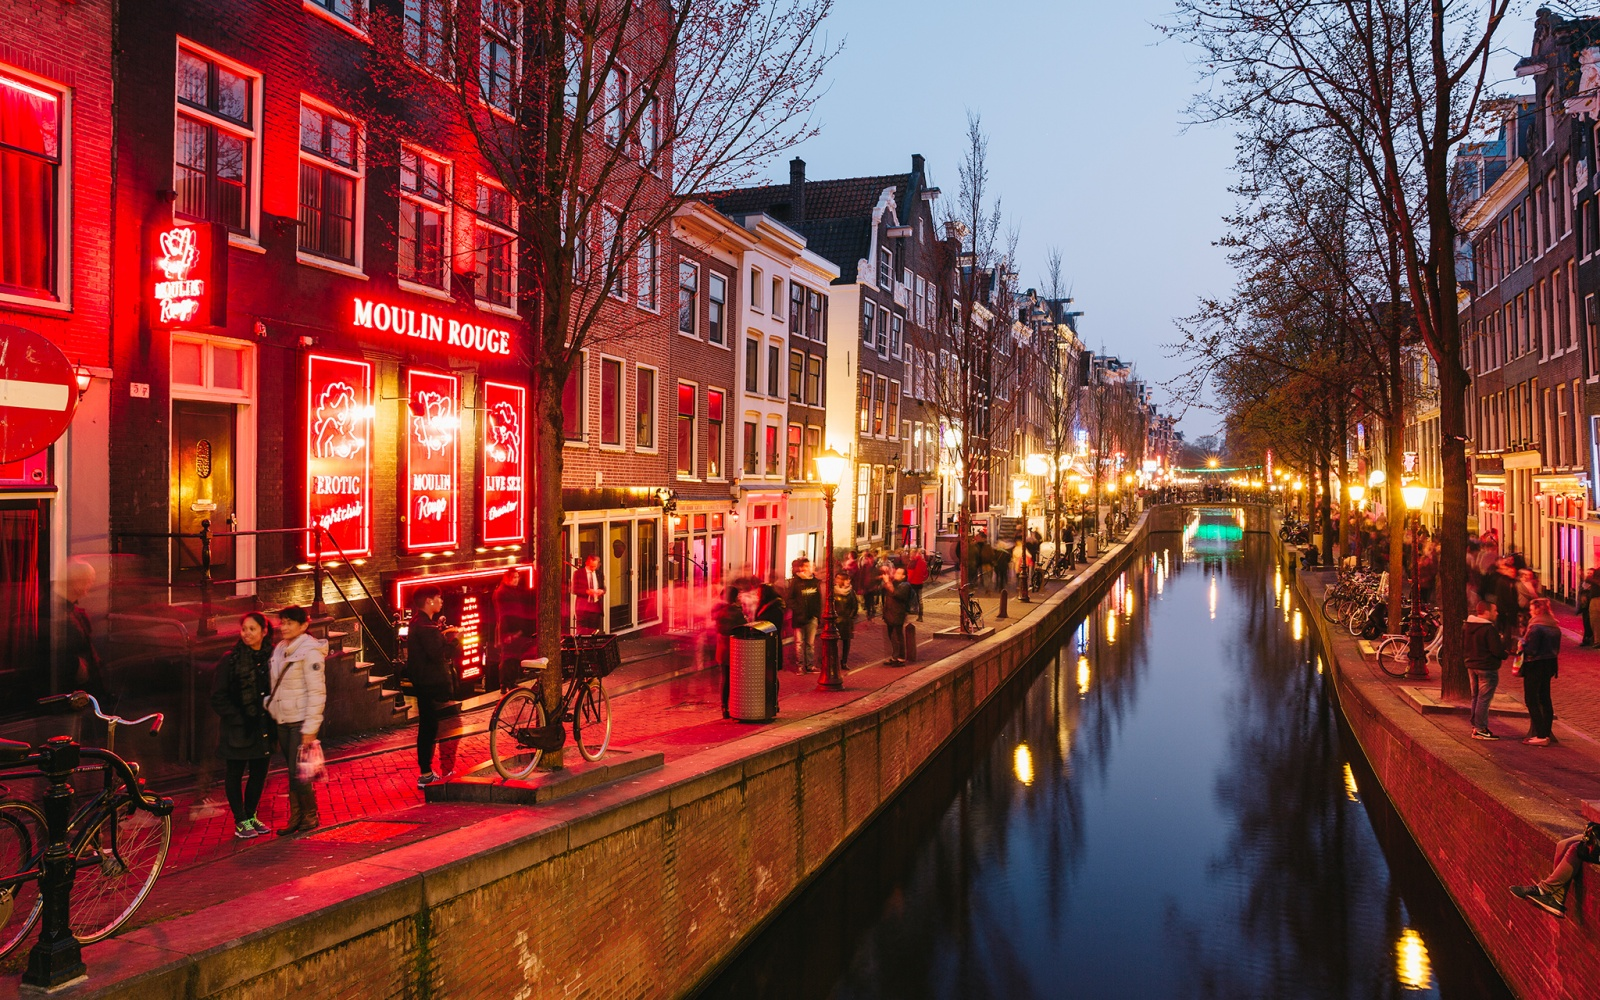 aMSTERAM rED lIGHTS